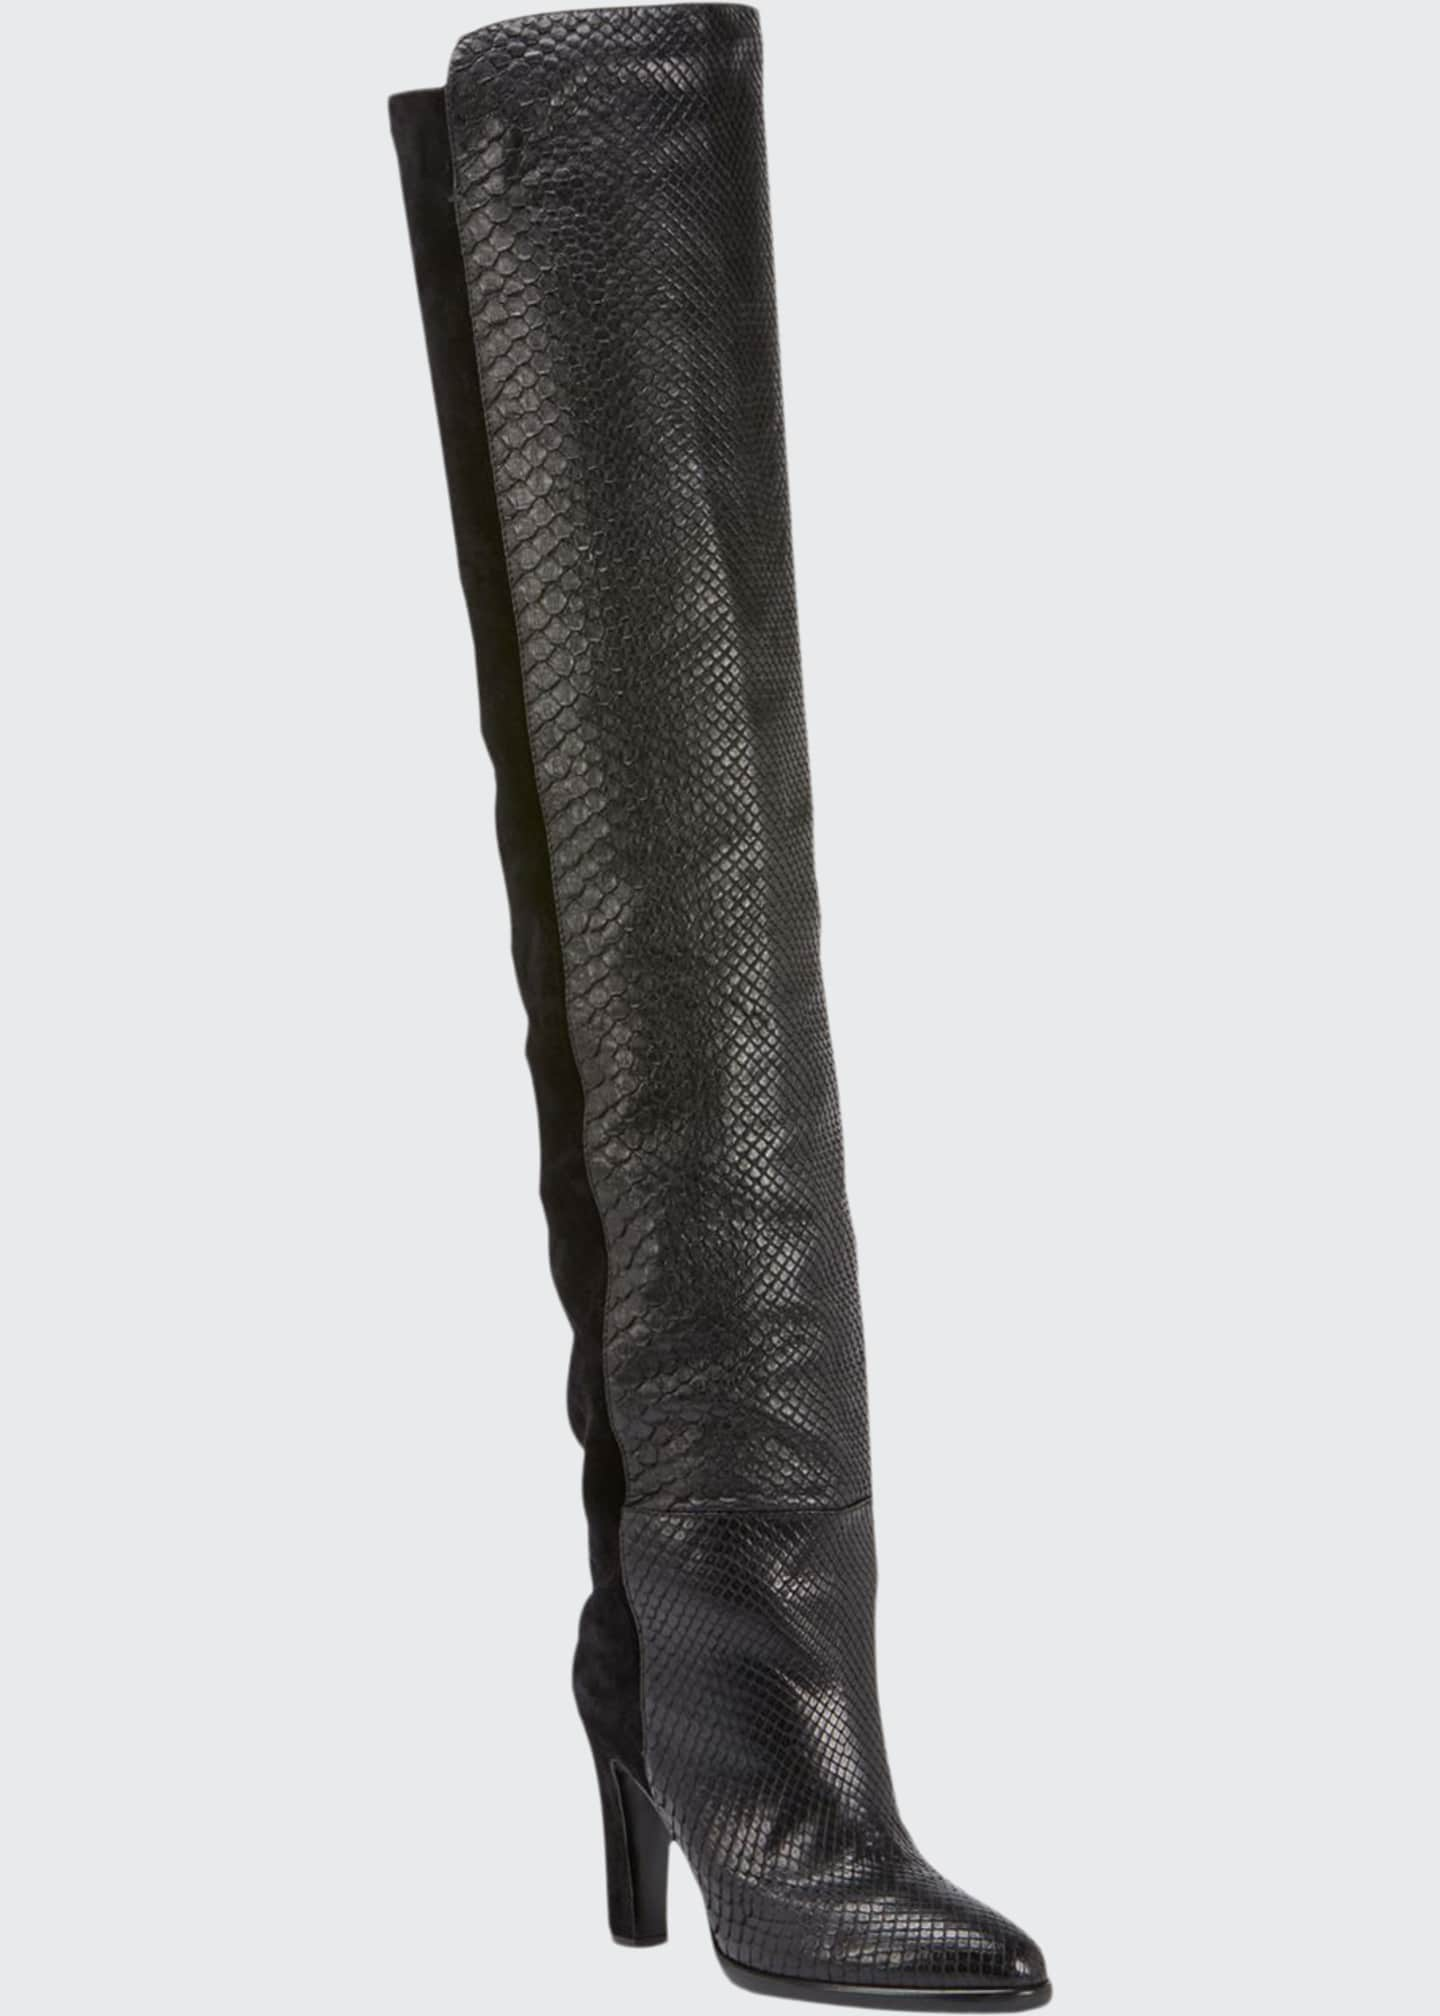 Givenchy Mayfair Over-The-Knee Boots